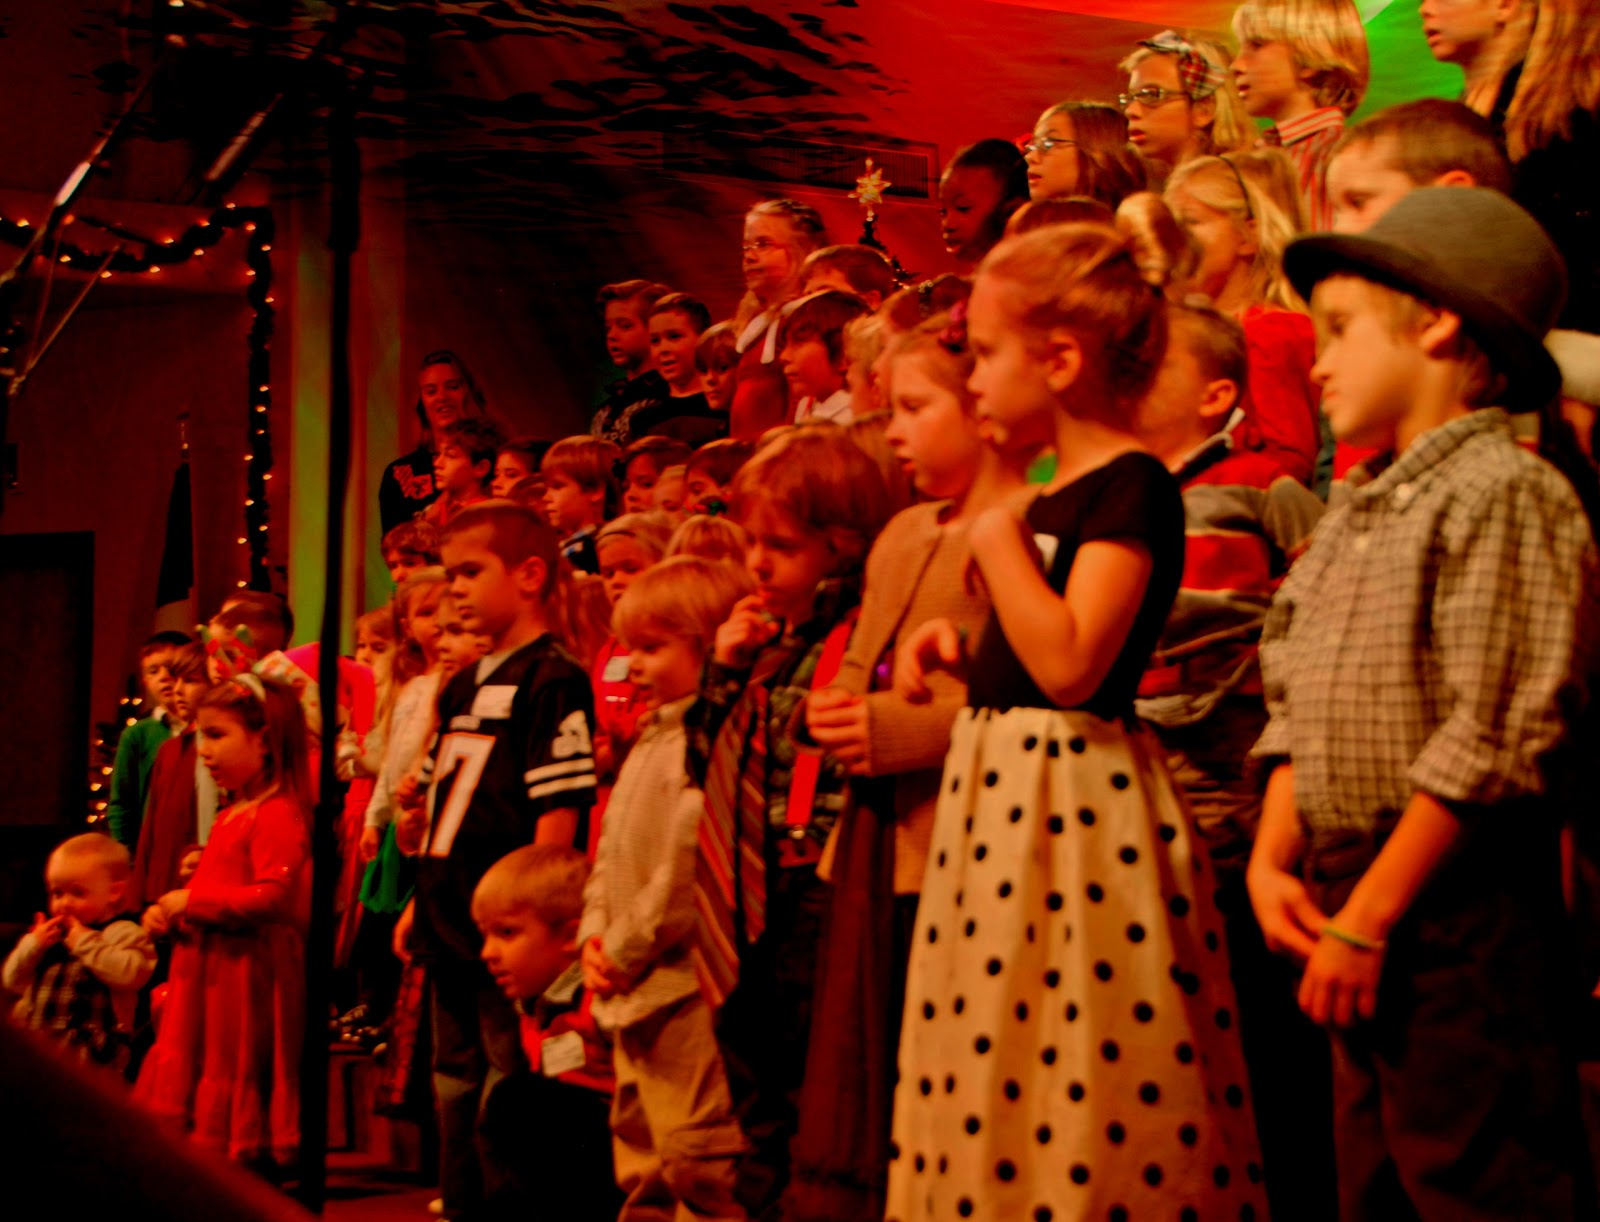 kid's choir singing in church